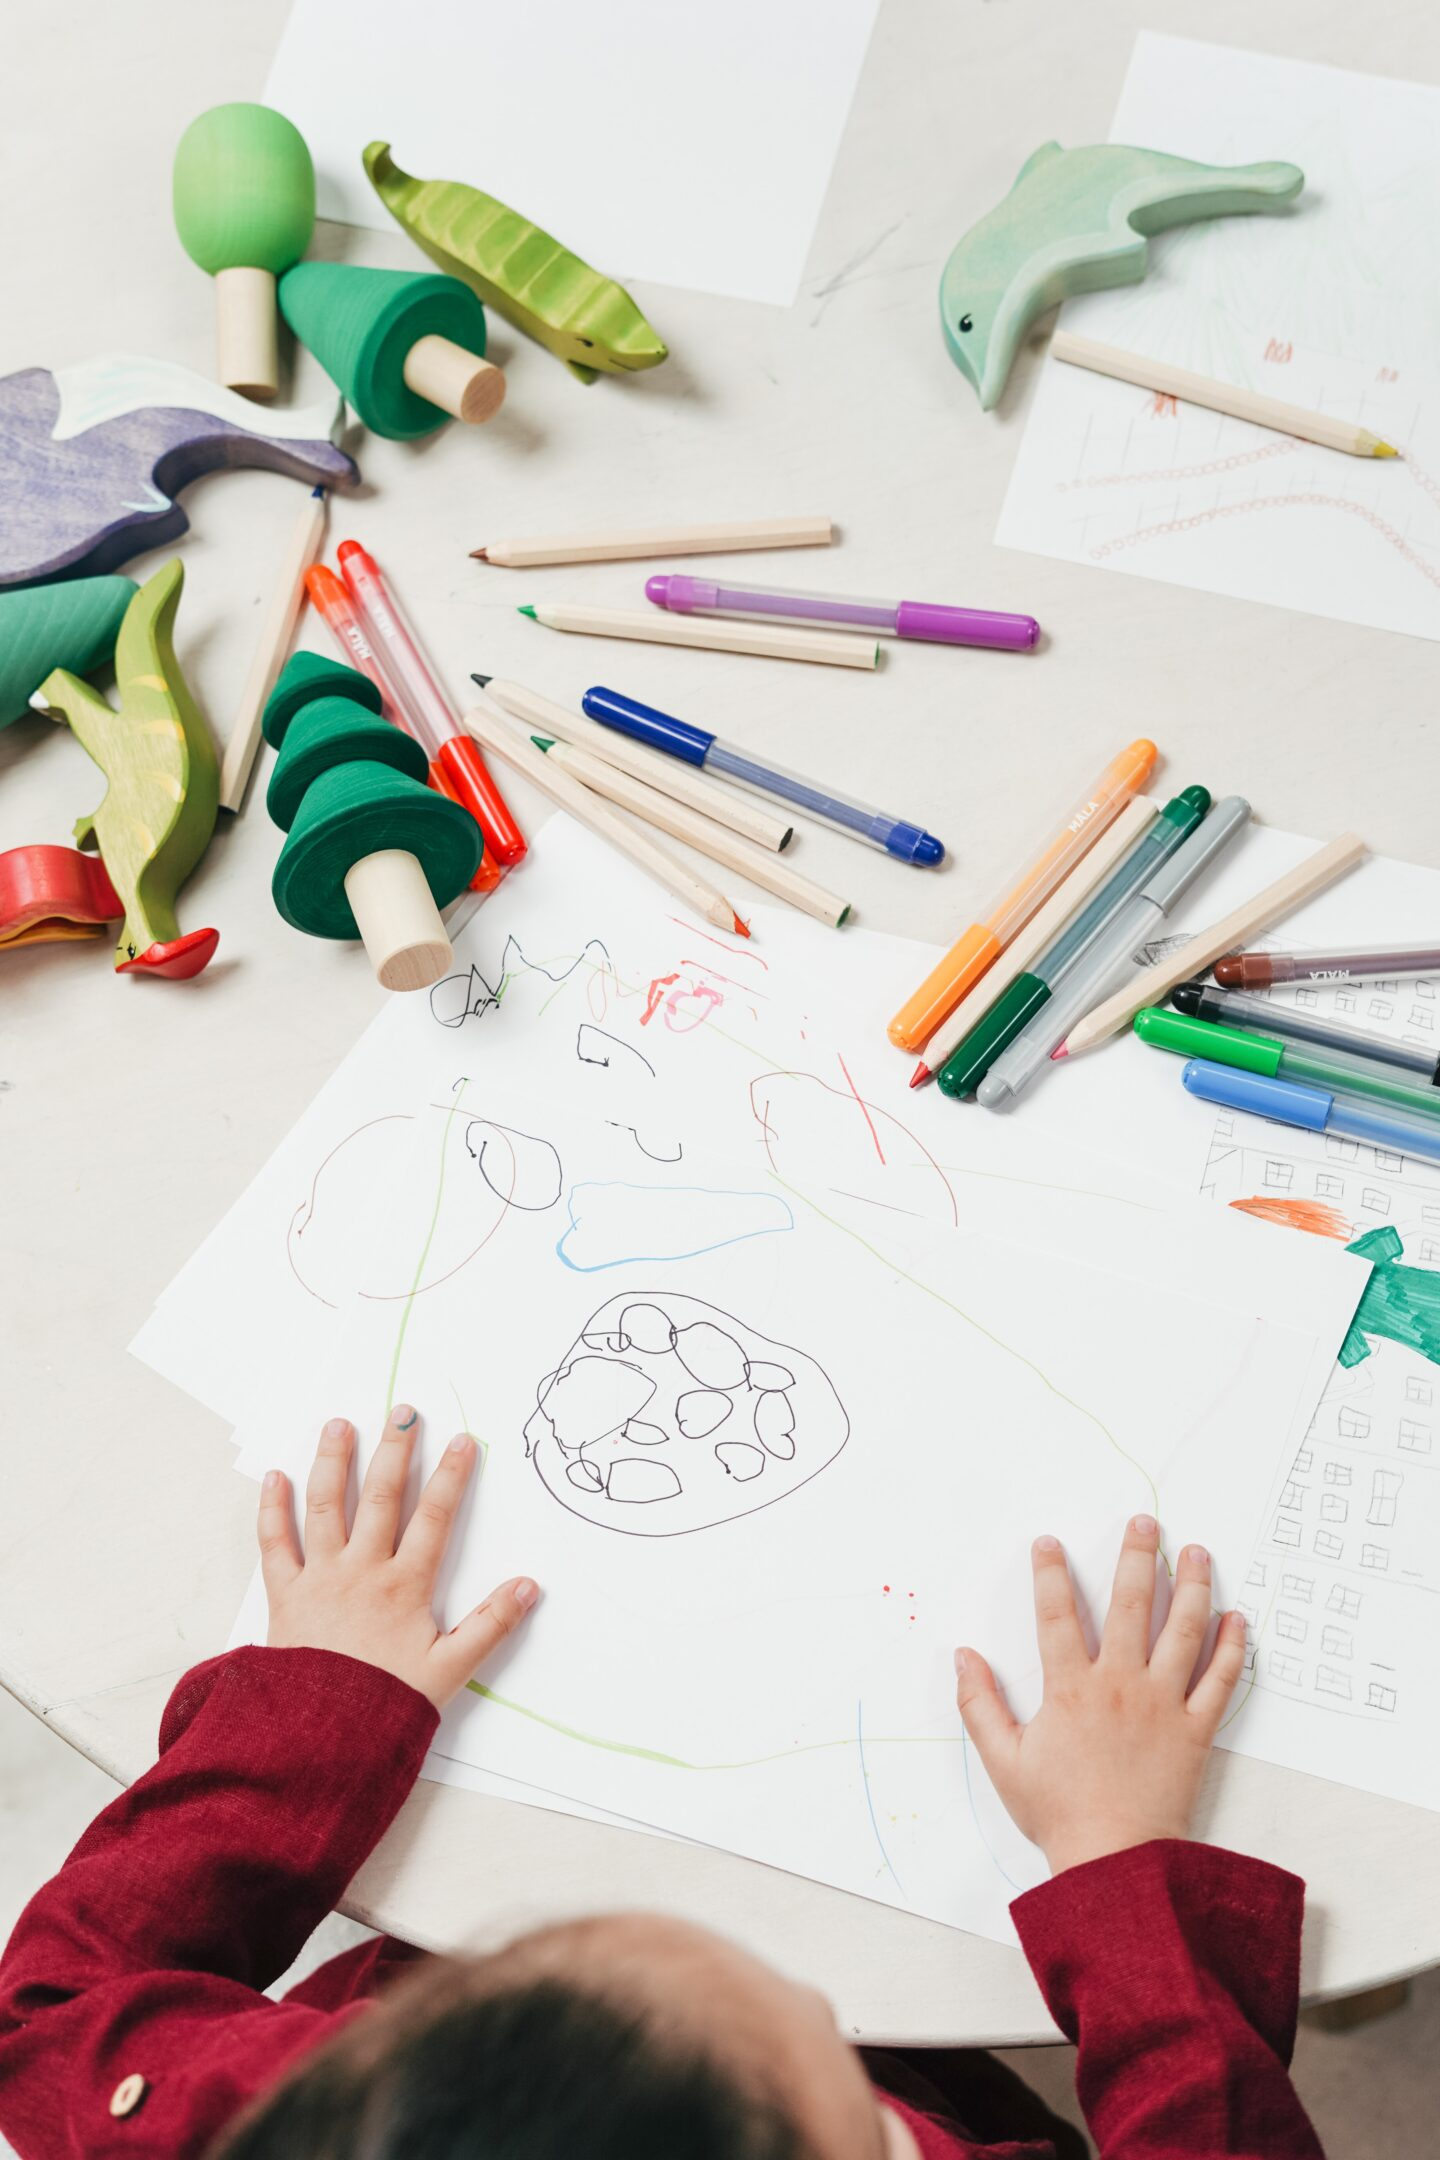 Kid painting on white table